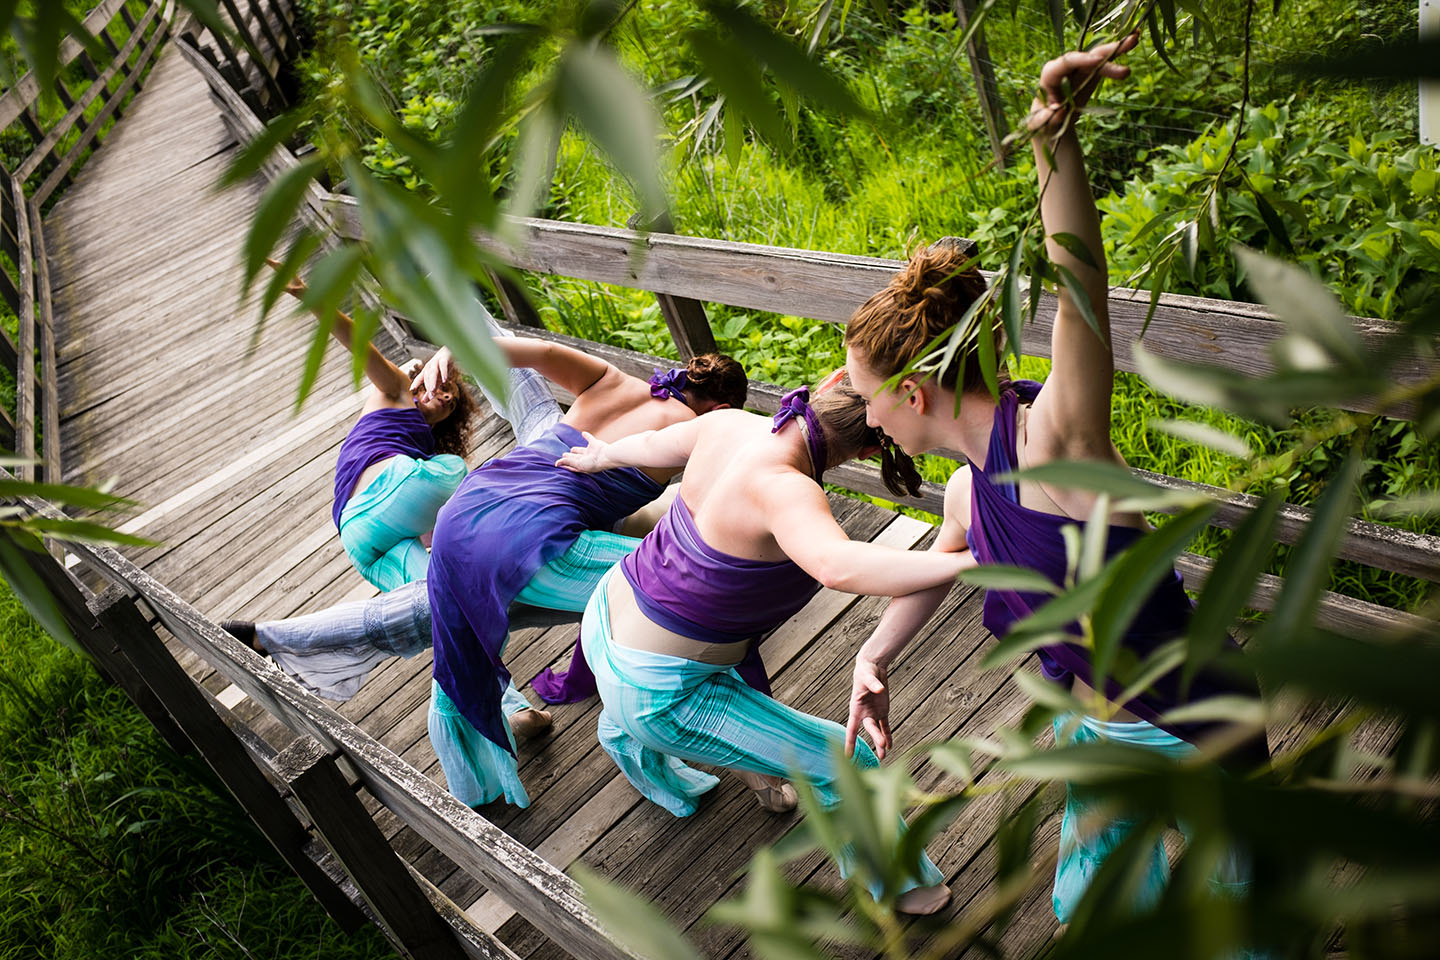 Image of 4 MorrisonDancers dancing down a wooden stairway outdoors in purple costumes